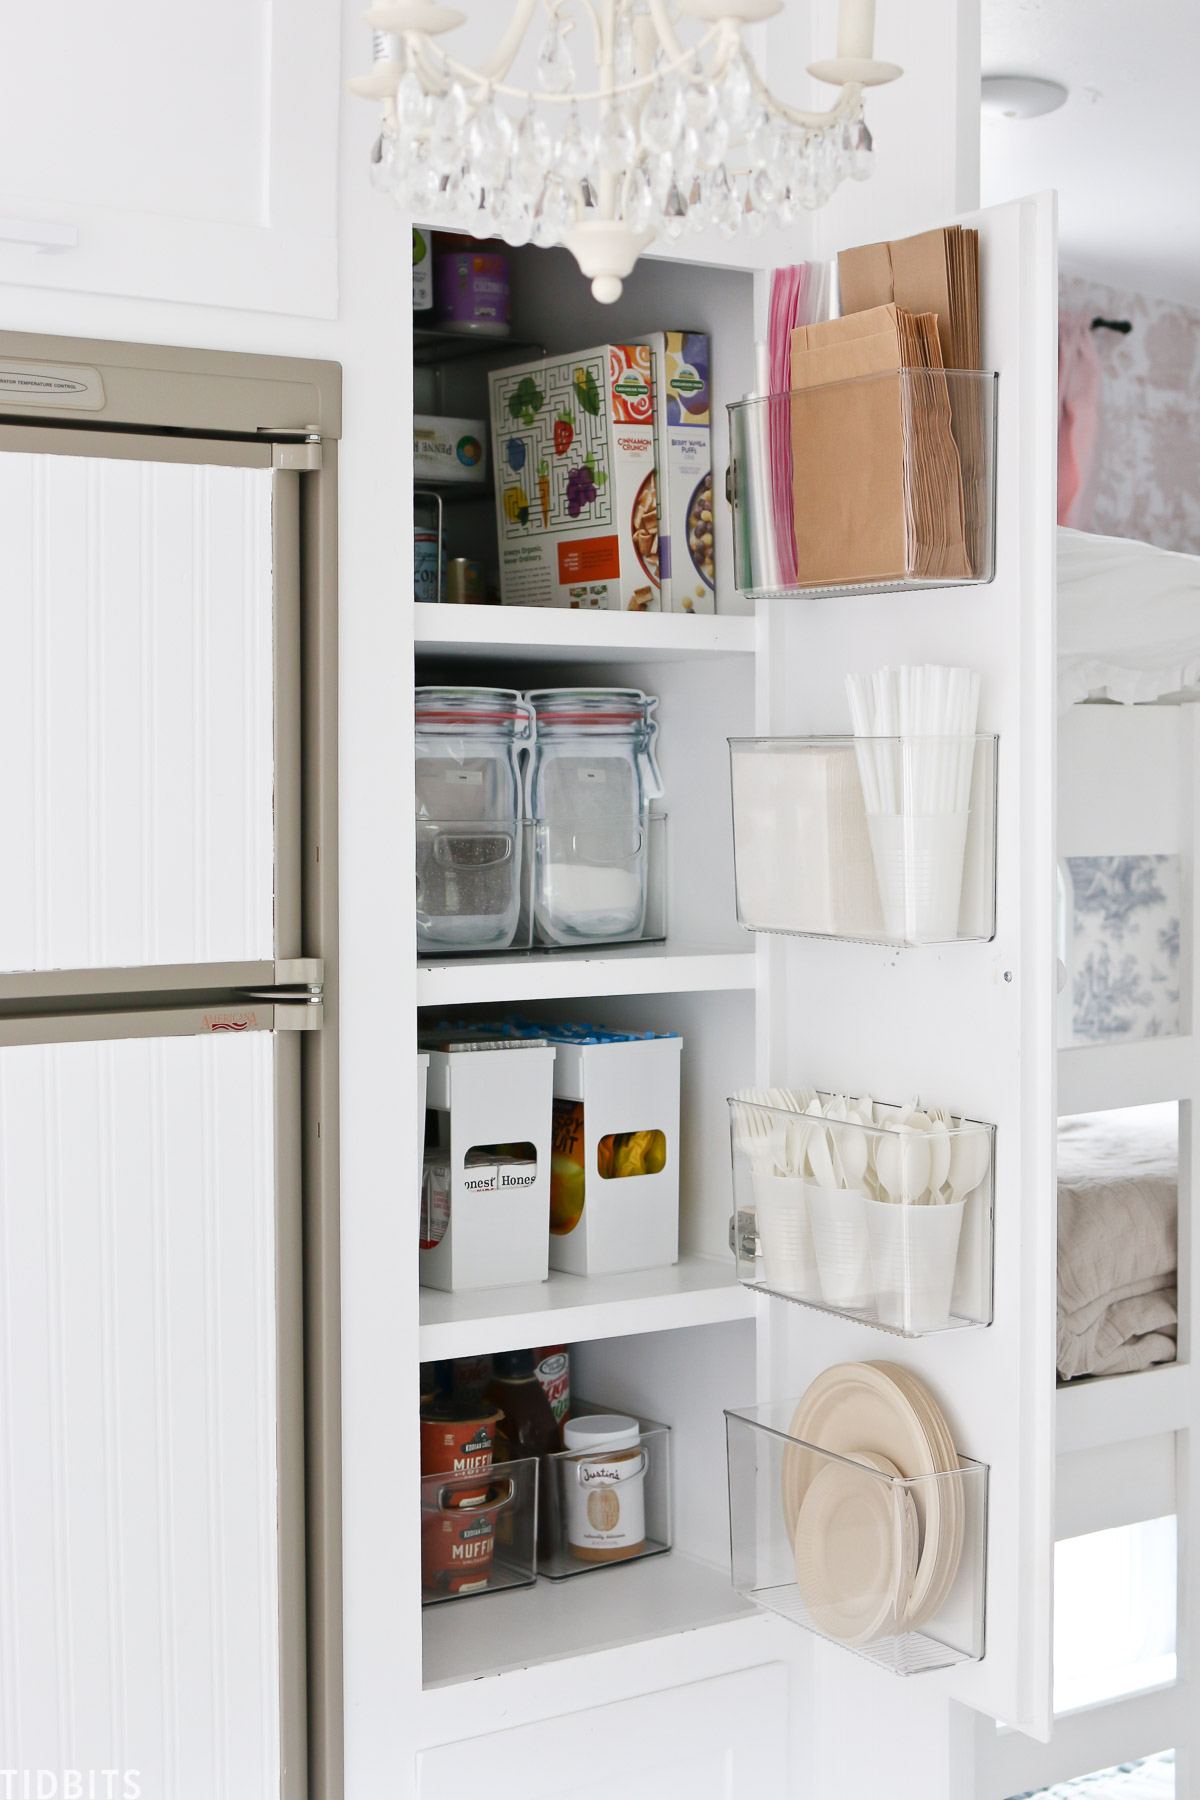 Small pantry organization ideas and ideas for RV kitchen storage